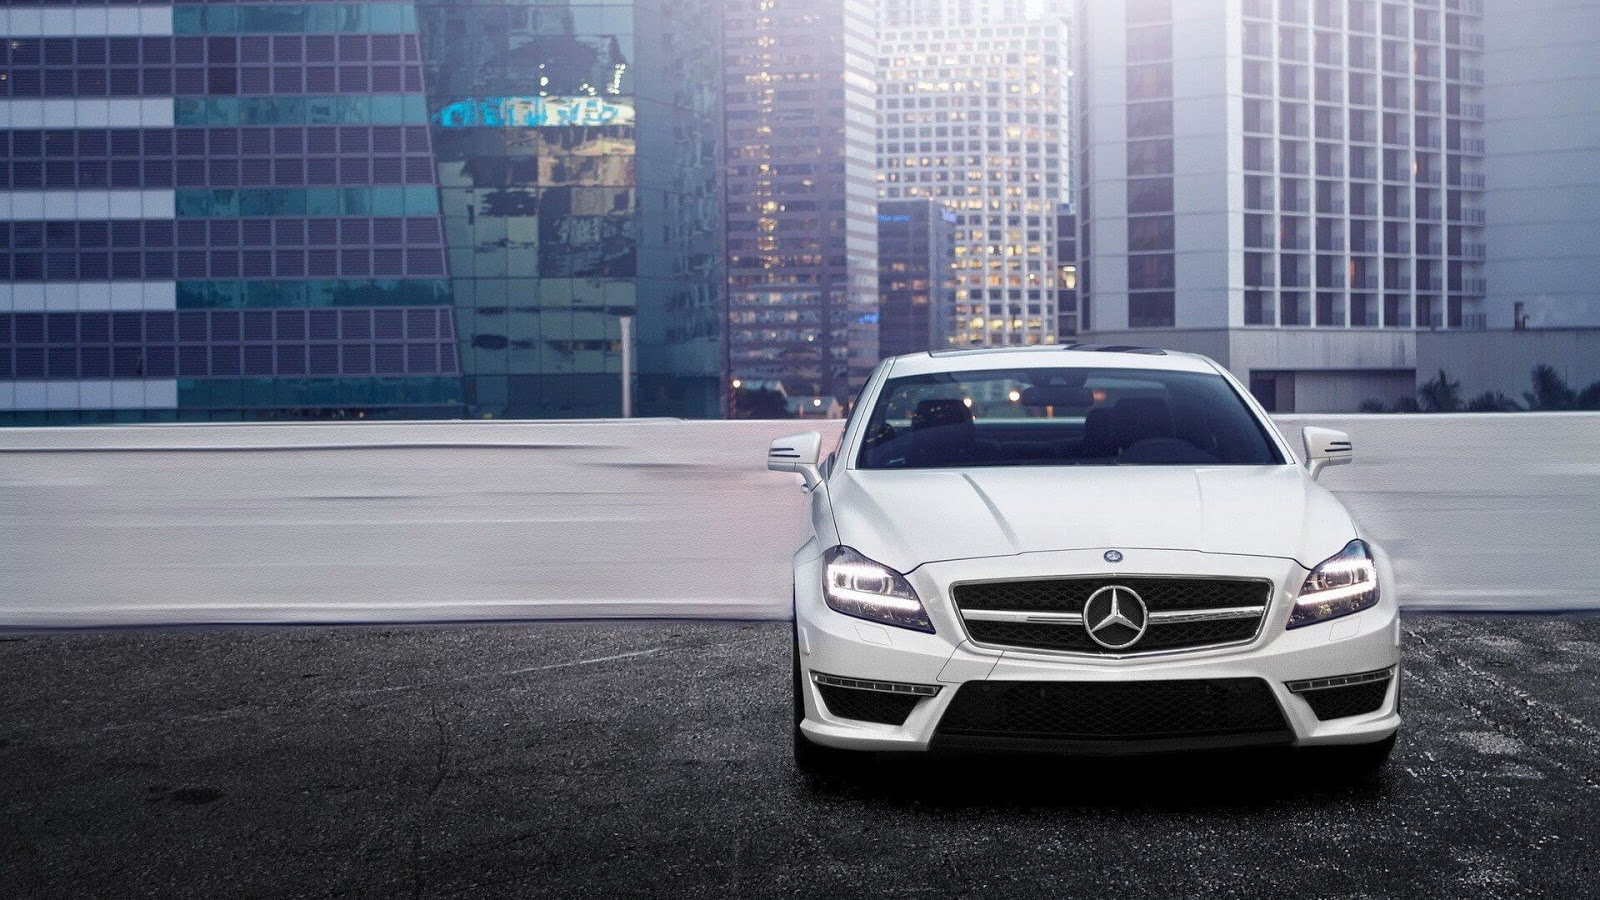 Free new wallpapers hd high quality motion for Contact mercedes benz financial